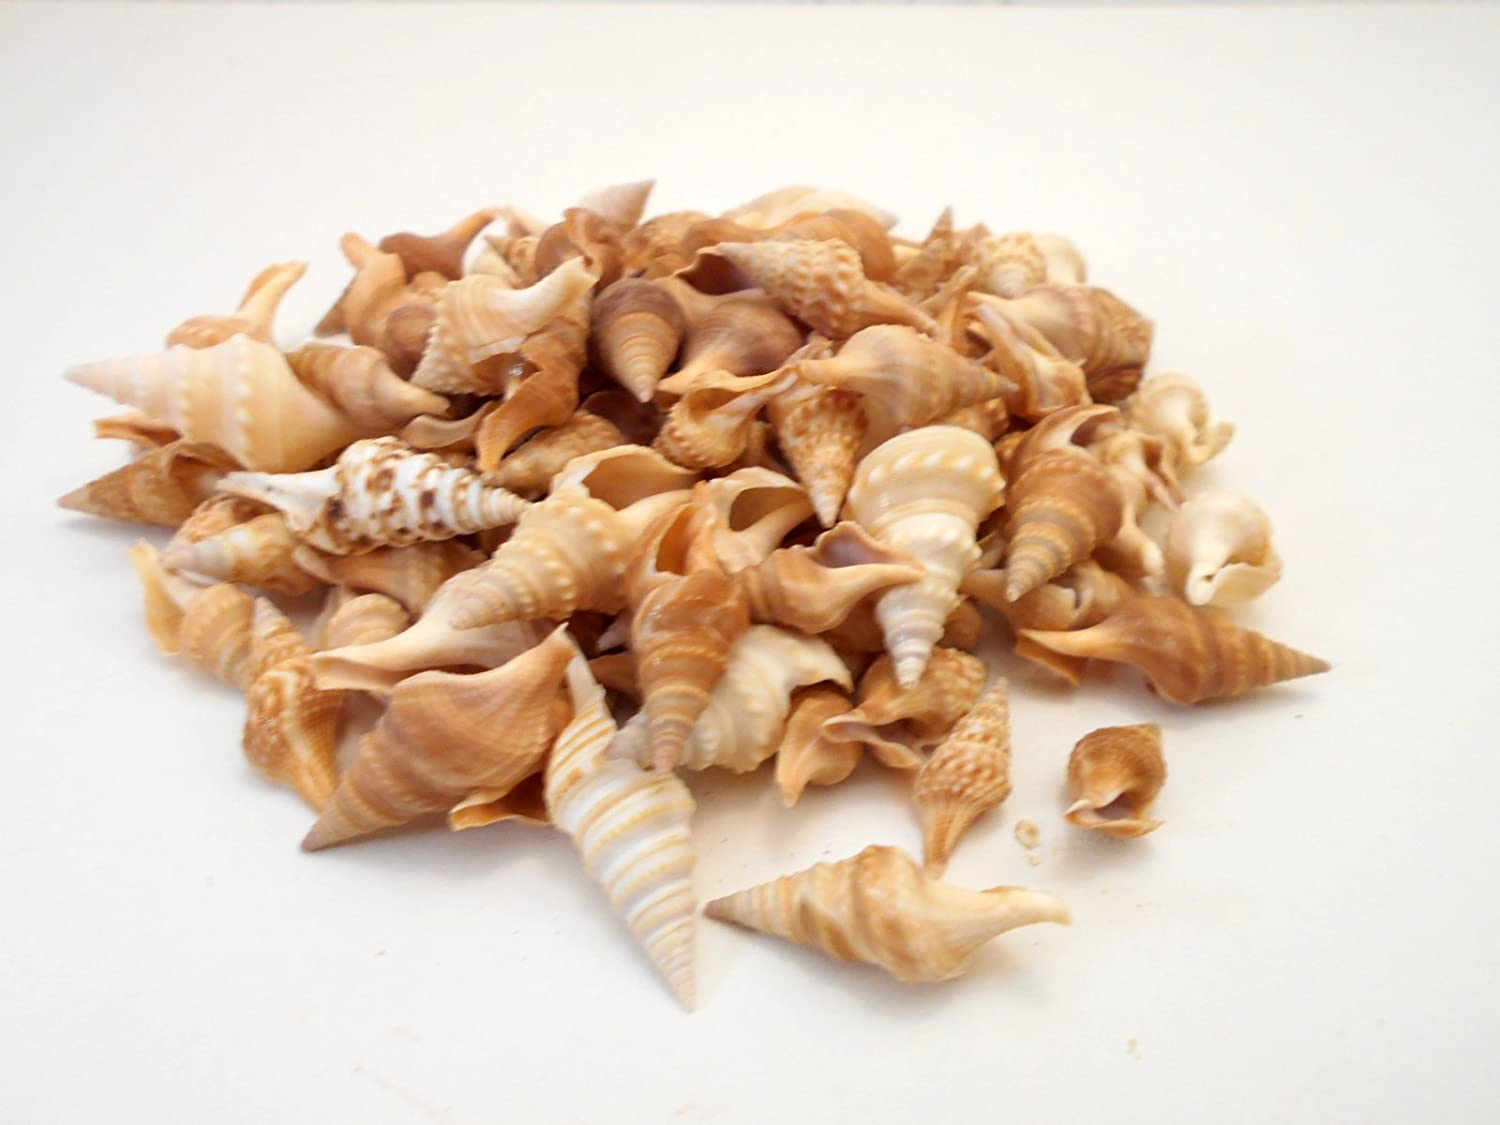 Amazon.com: BULK 1 lb (500-600) Javana Seashells 3/4